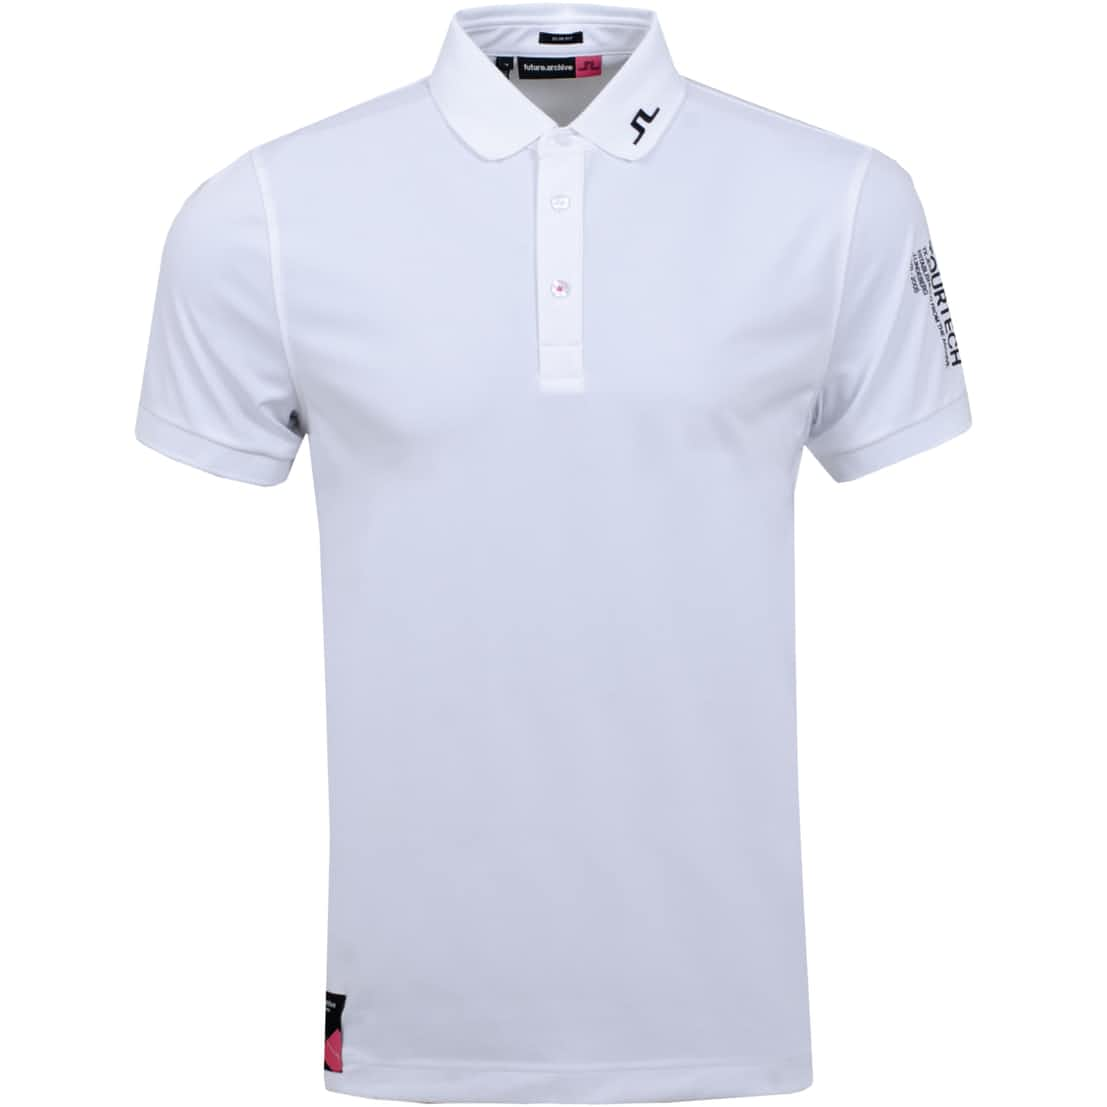 Tour Tech Archived White - SS20